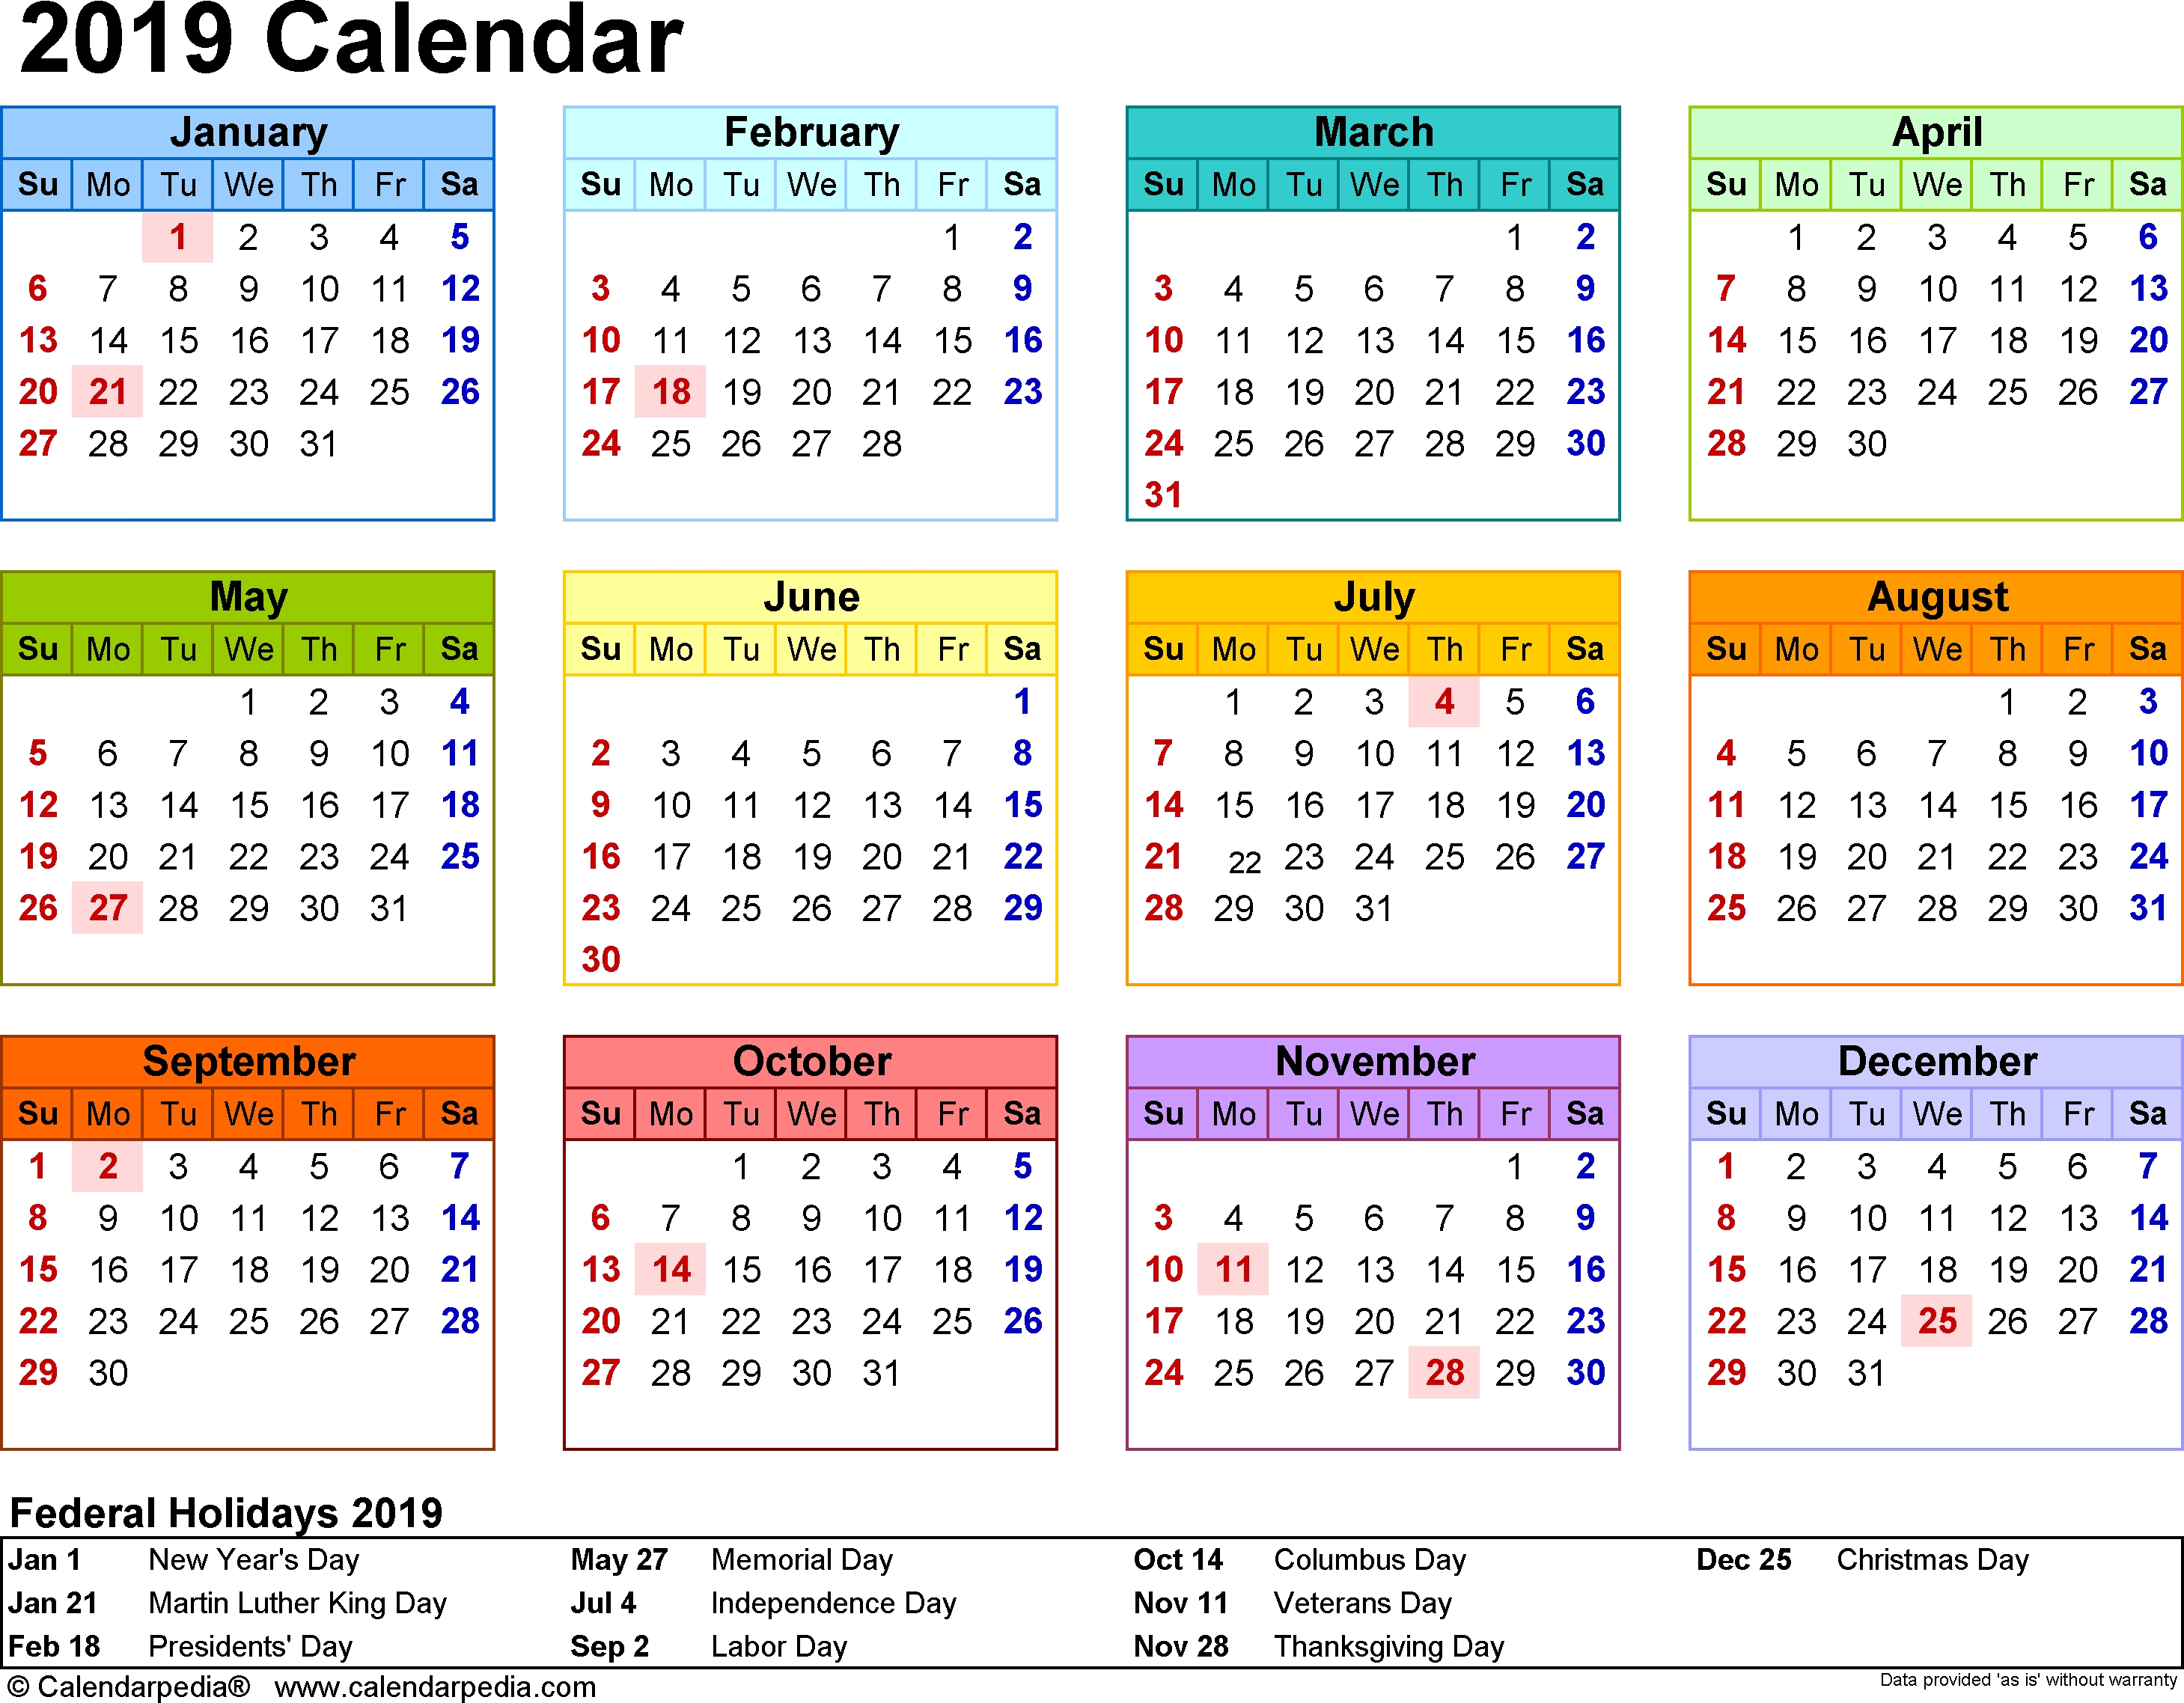 Printable School Calendar 2019 South Africa | Printable-Calendar 2020 With Holidays South Africa